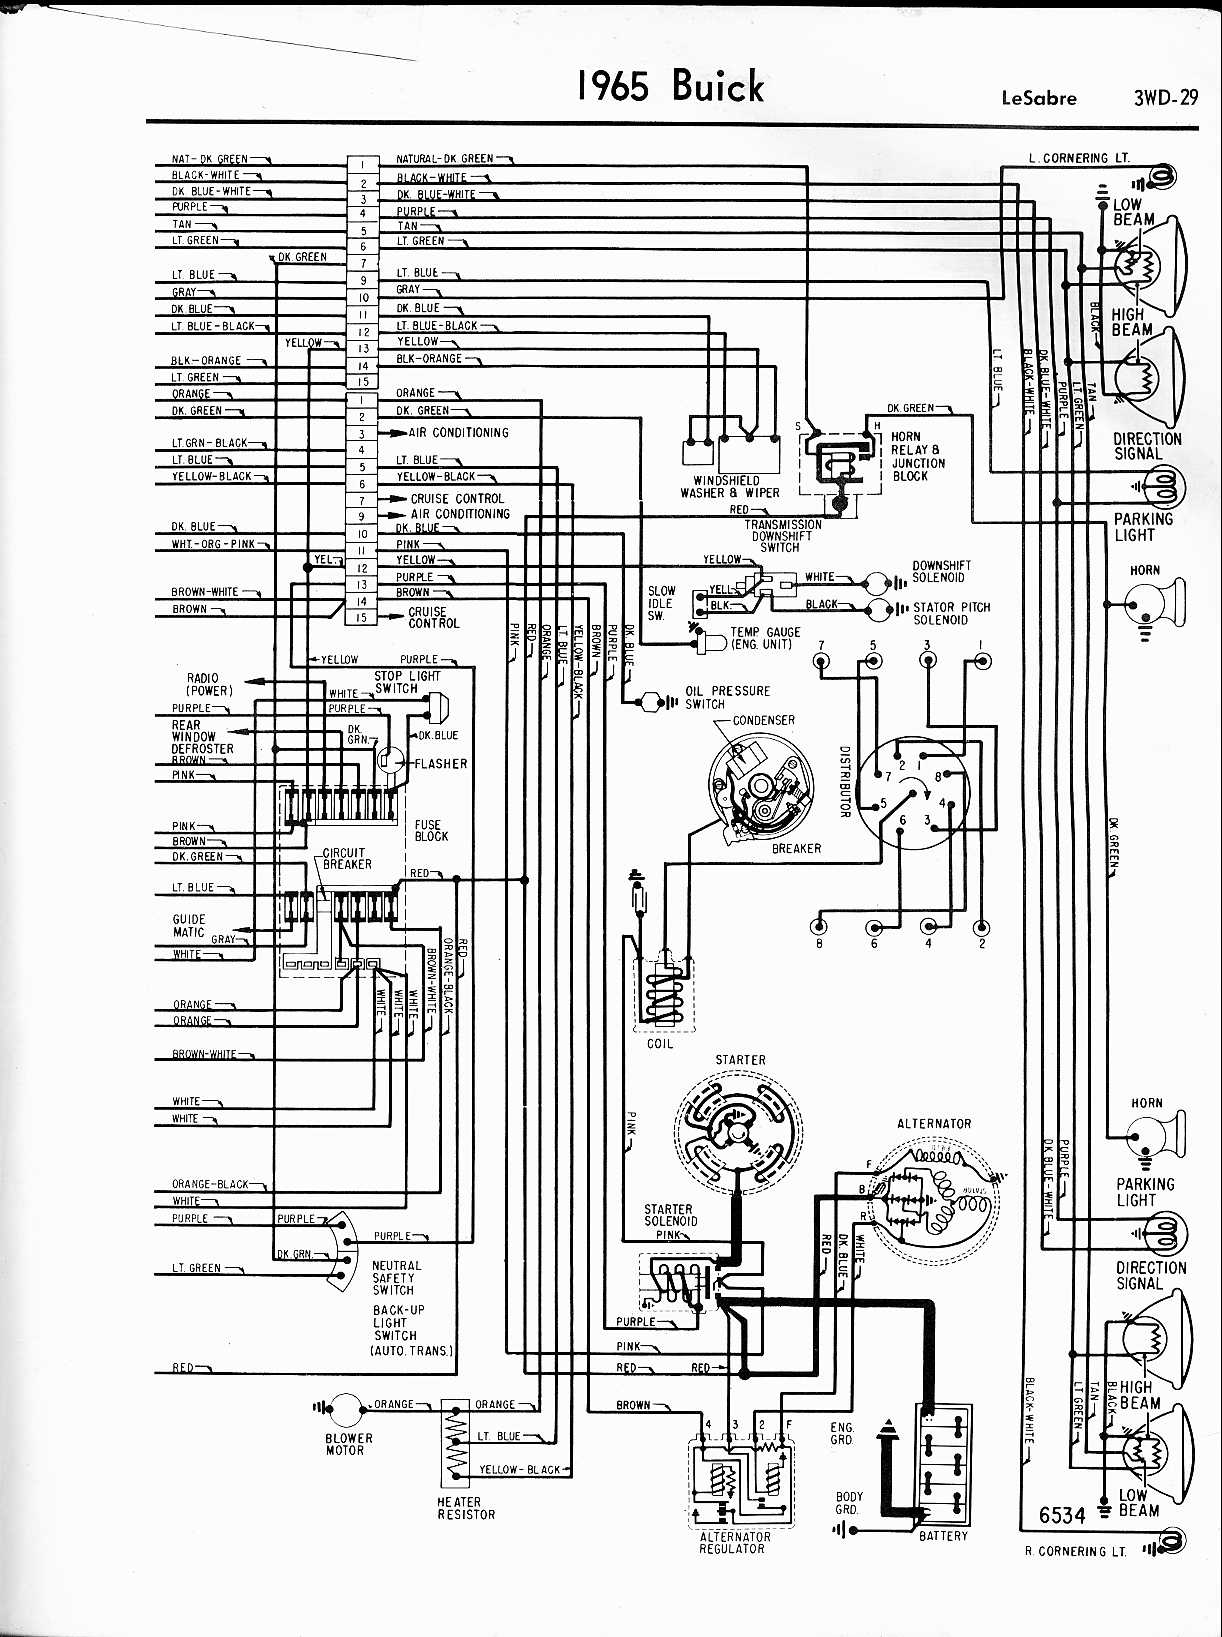 1989 buick riviera wiring diagram simple wiring diagram schema1989 buick  reatta fuse box wiring library engine